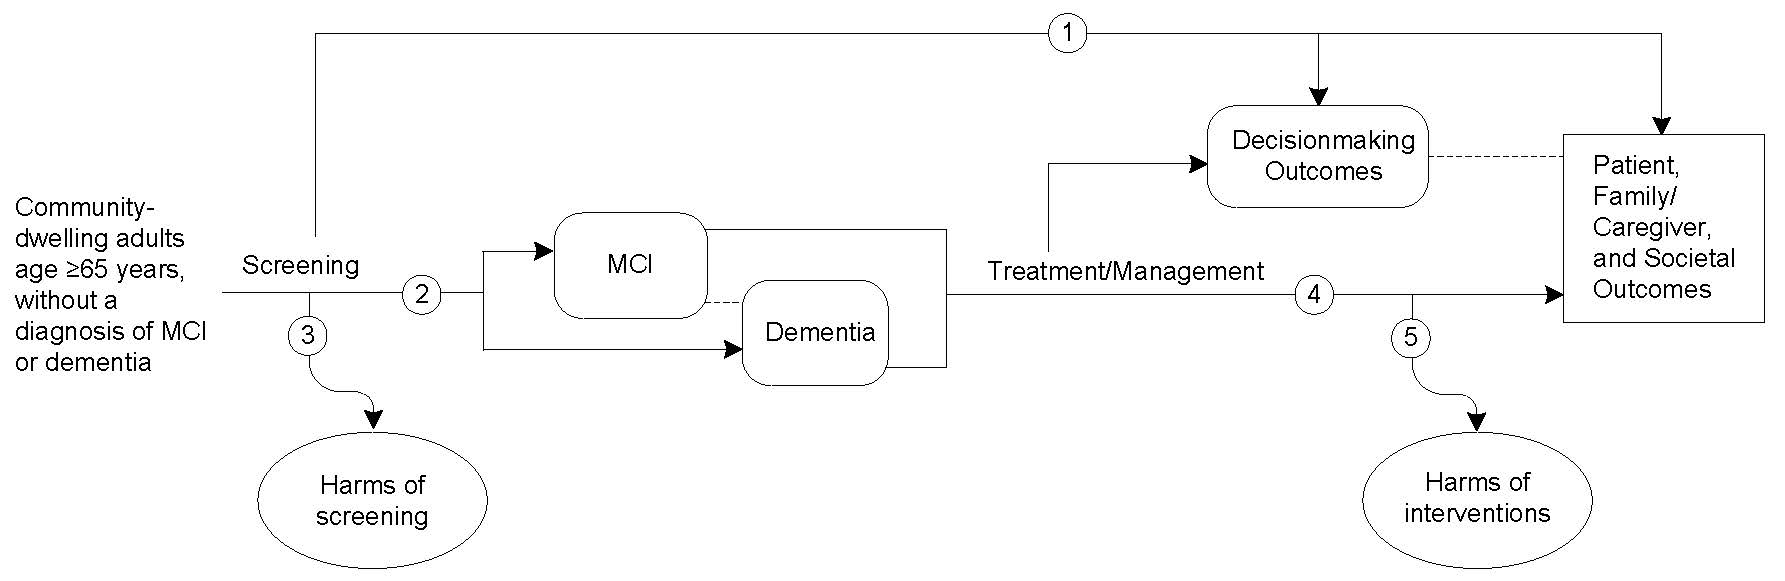 Figure 1 is the analytic framework that depicts the five Key Questions to be addressed in the systematic review. The figure illustrates how screening for cognitive impairment in adults age 65 years or older may result in improved intermediate outcomes (decisionmaking) and health outcomes (patient, family/caregiver, and societal outcomes) (Key Question 1). There is also a question related to the accuracy of screening instruments used to detect cognitive impairment (Key Question 2) and potential harms of screening (Key Question 3). Additionally, the figure illustrates how interventions for early-stage dementia may have an effect on intermediate outcomes (decisionmaking) and health outcomes (patient, family/caregiver, and societal outcomes) (Key Question 4), and whether these interventions result in any harms (Key Question 5).